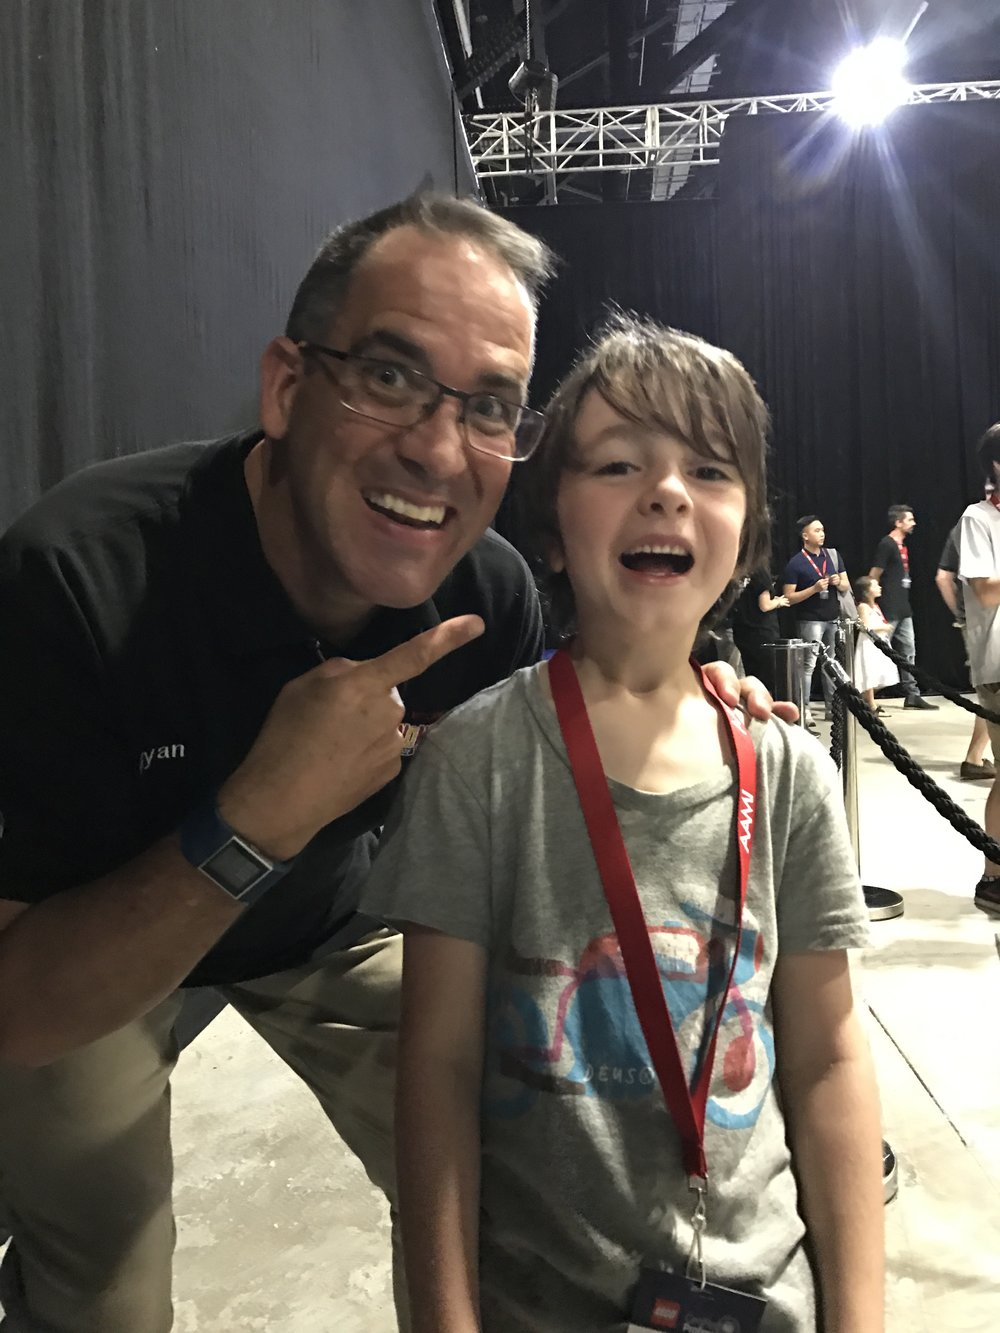 Sharing moments - Jethro meeting Brickman - Australia's only official Lego designer.